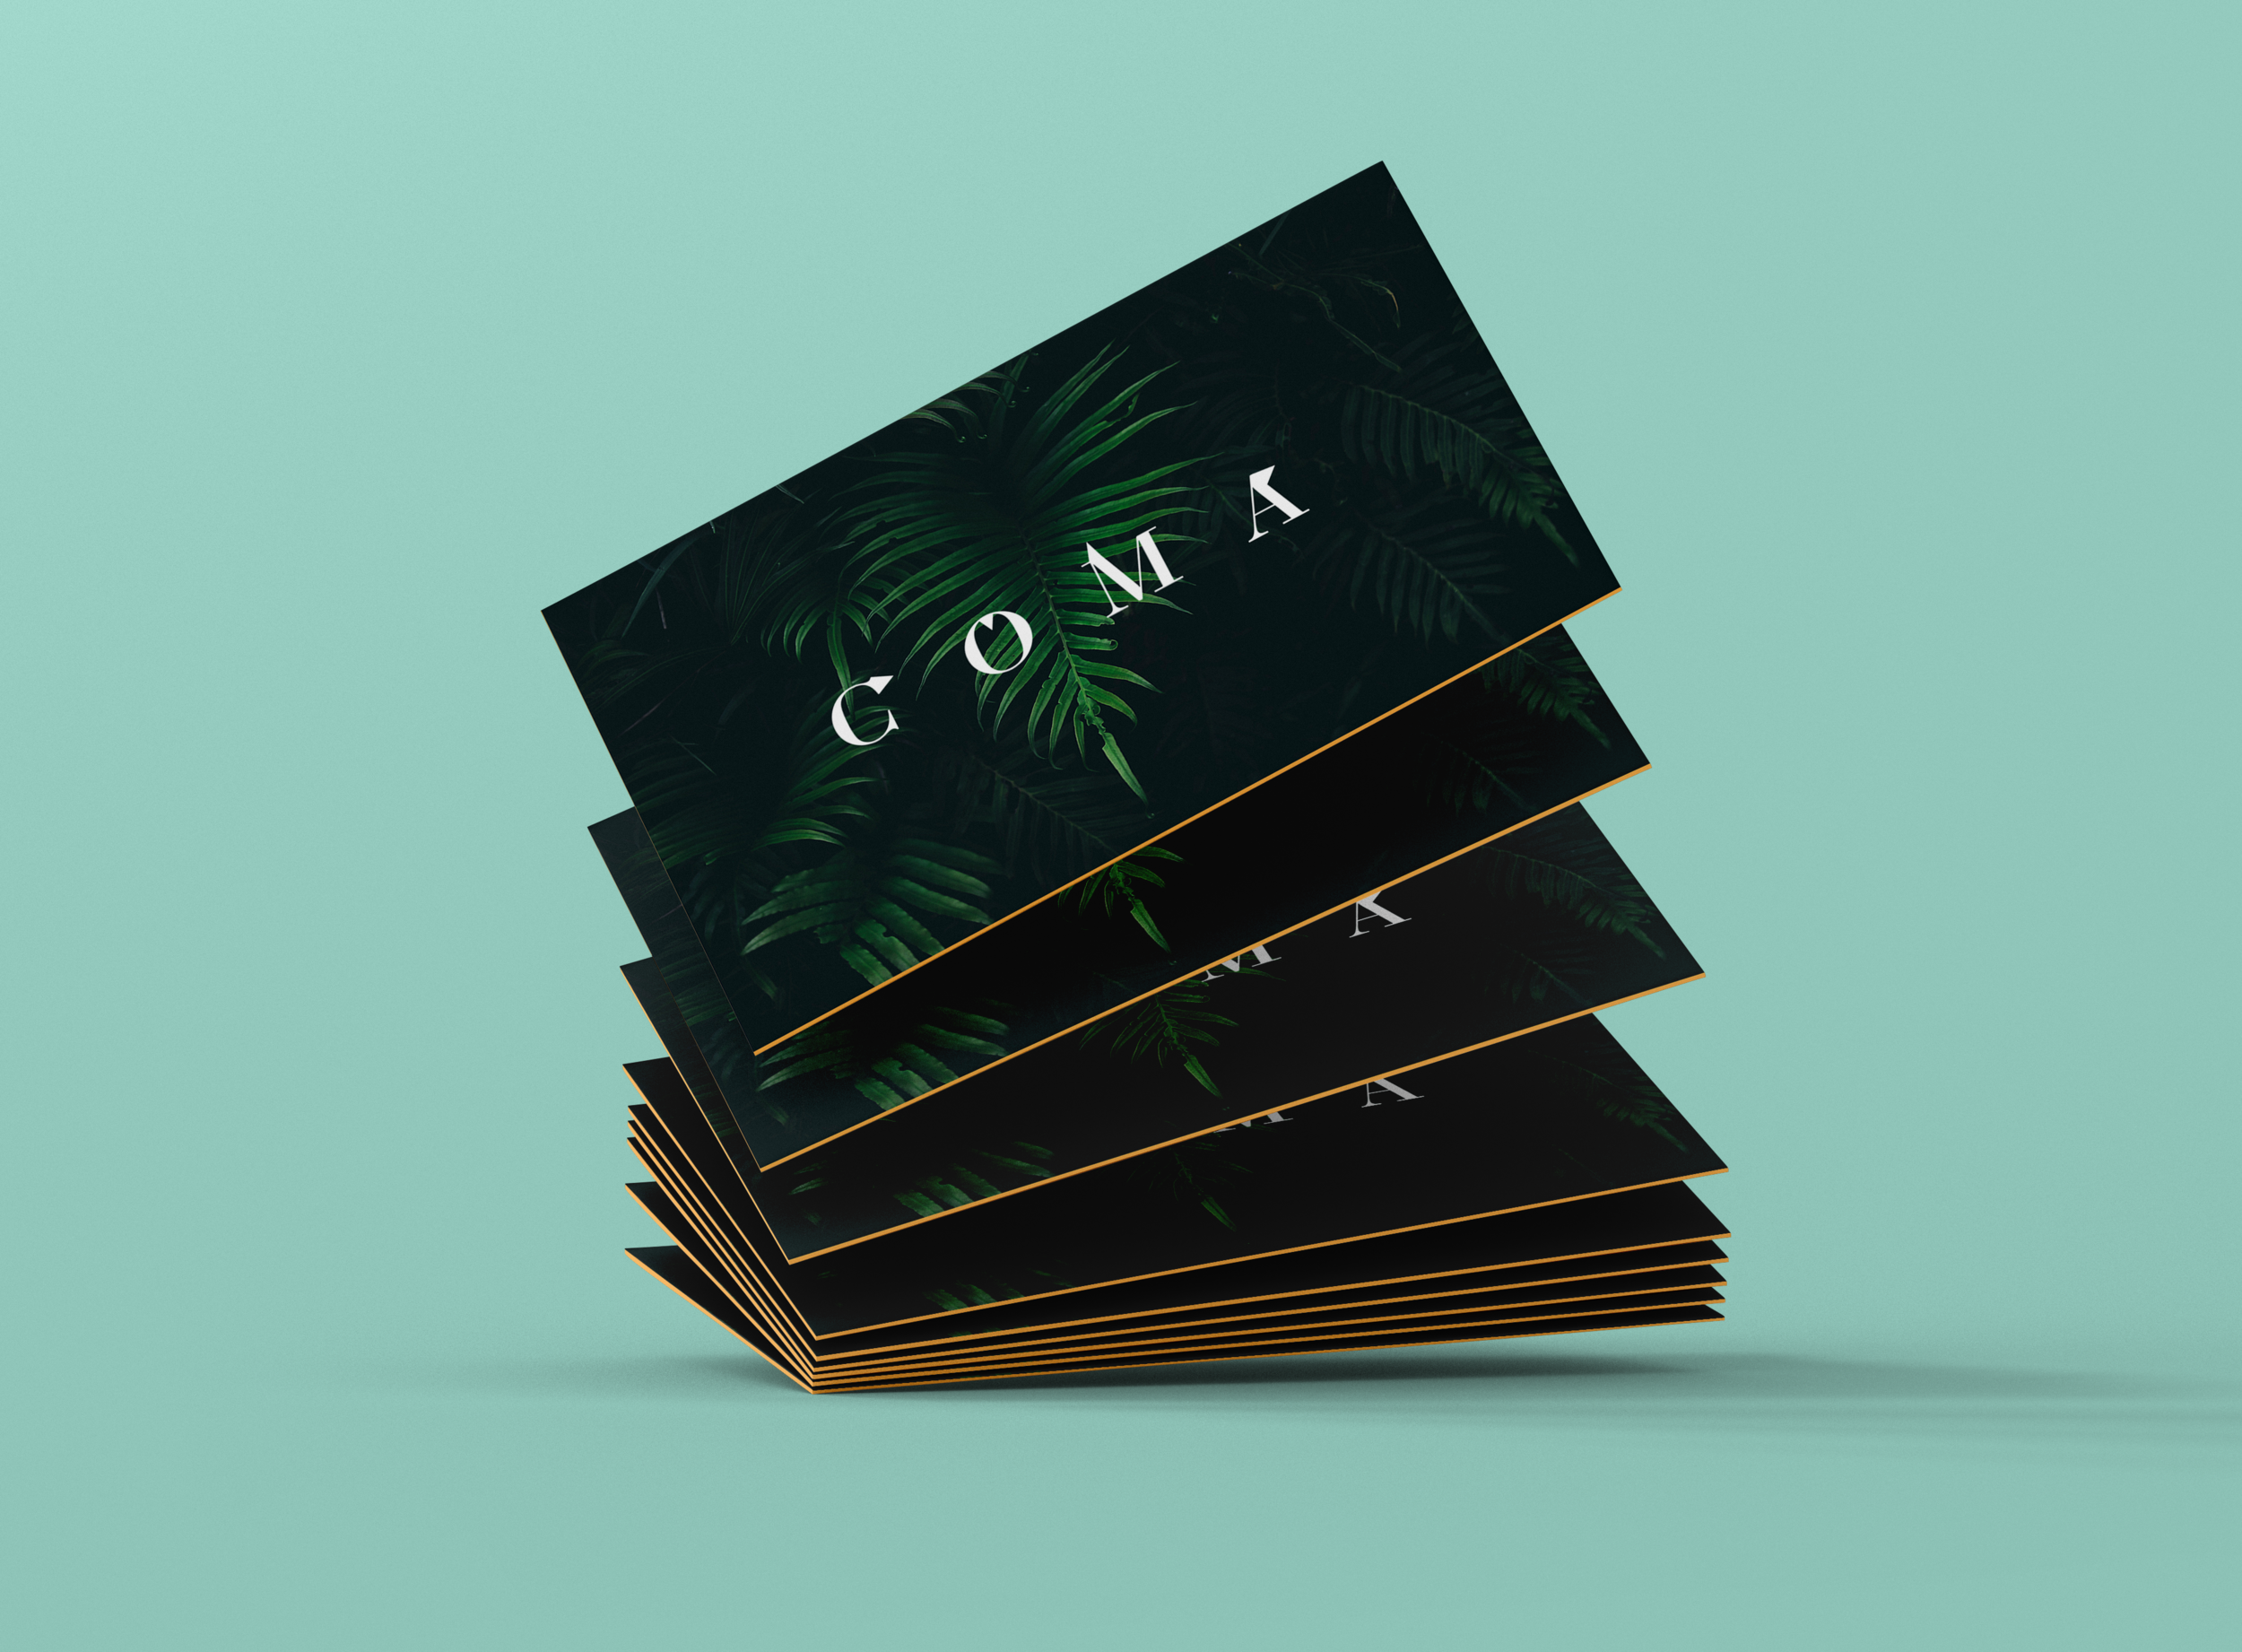 COMA Buisness Card Falling.png